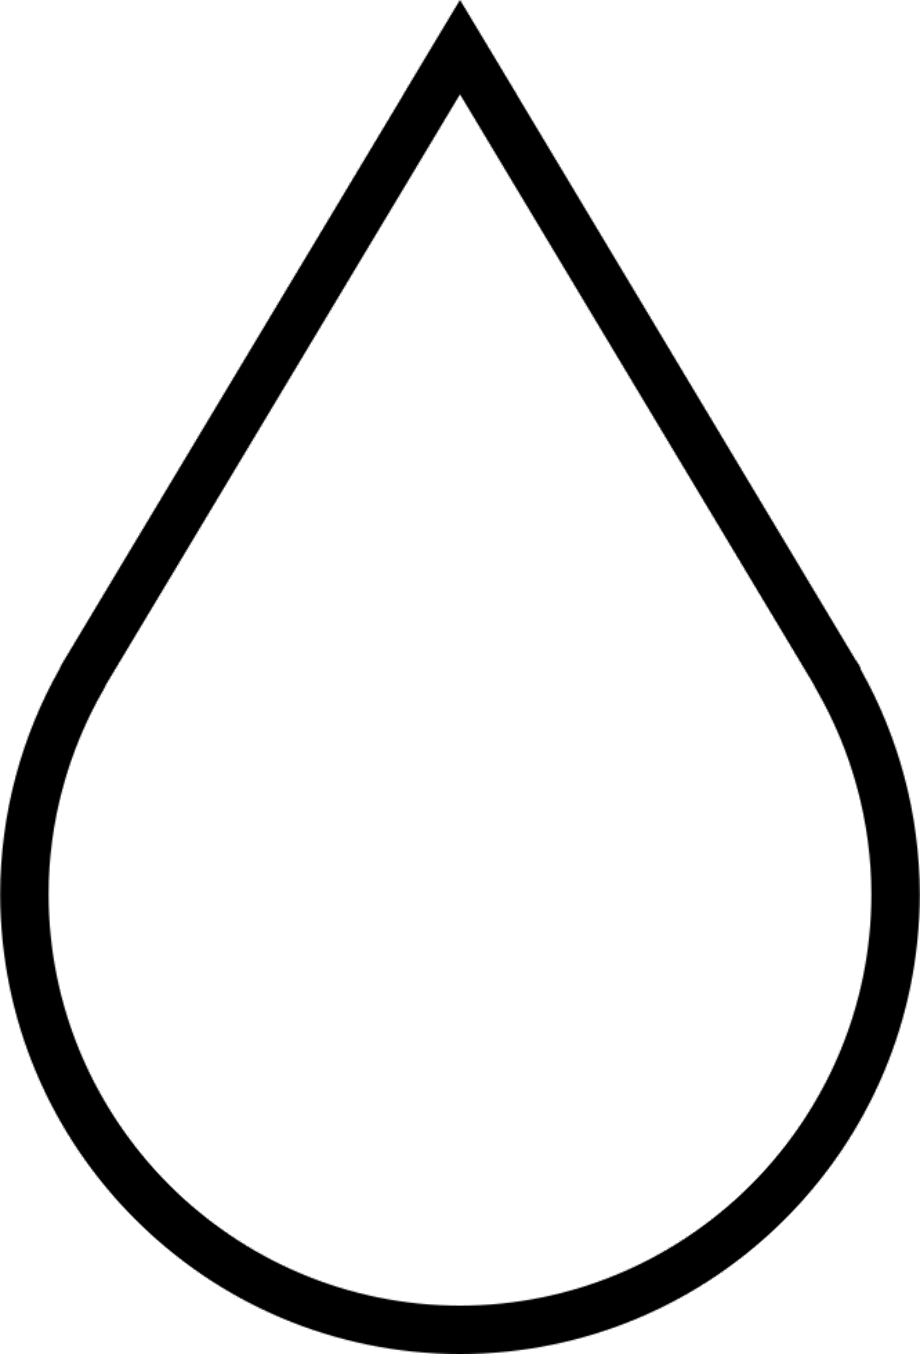 water drop coloring page water drop clipart droplet droplets coloring page drop water page coloring